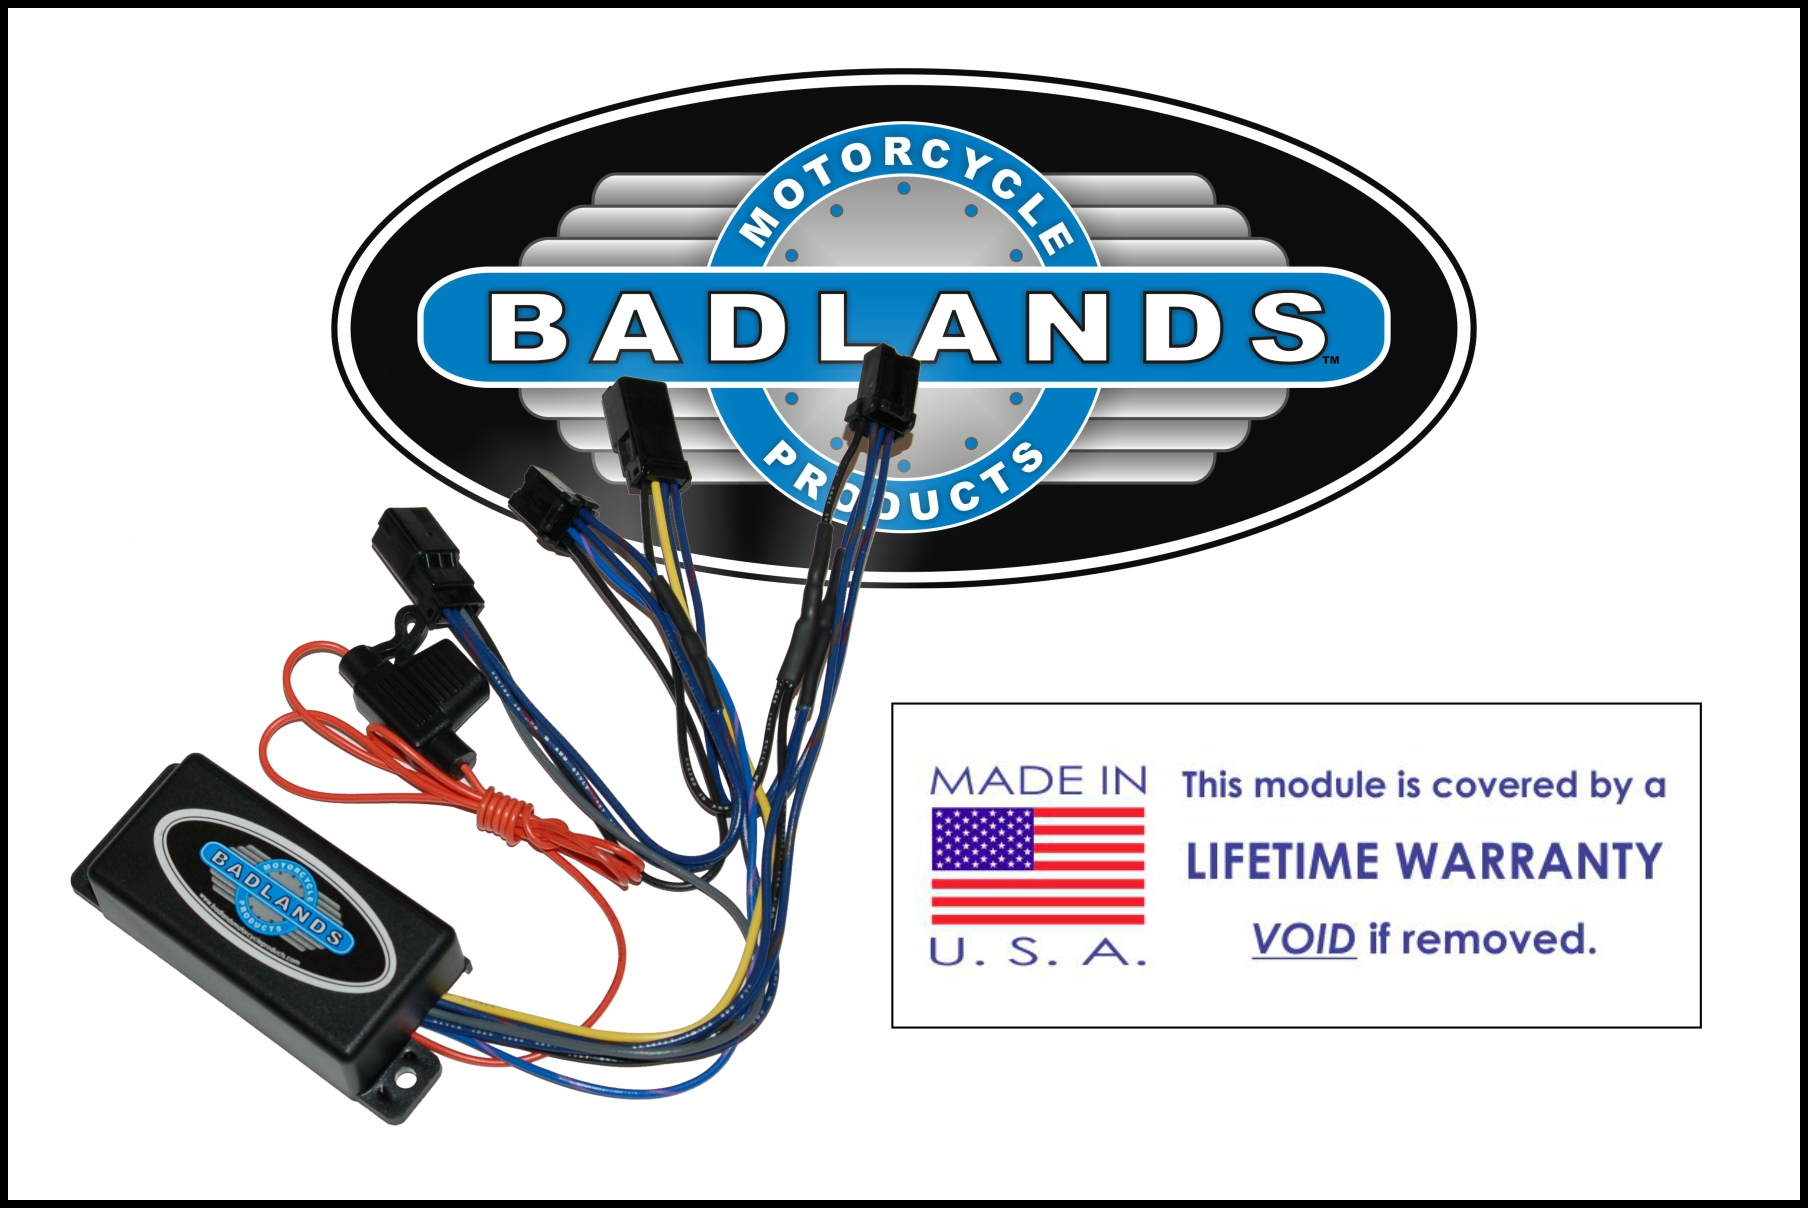 Badlands, the original lighting module company, established 1990.